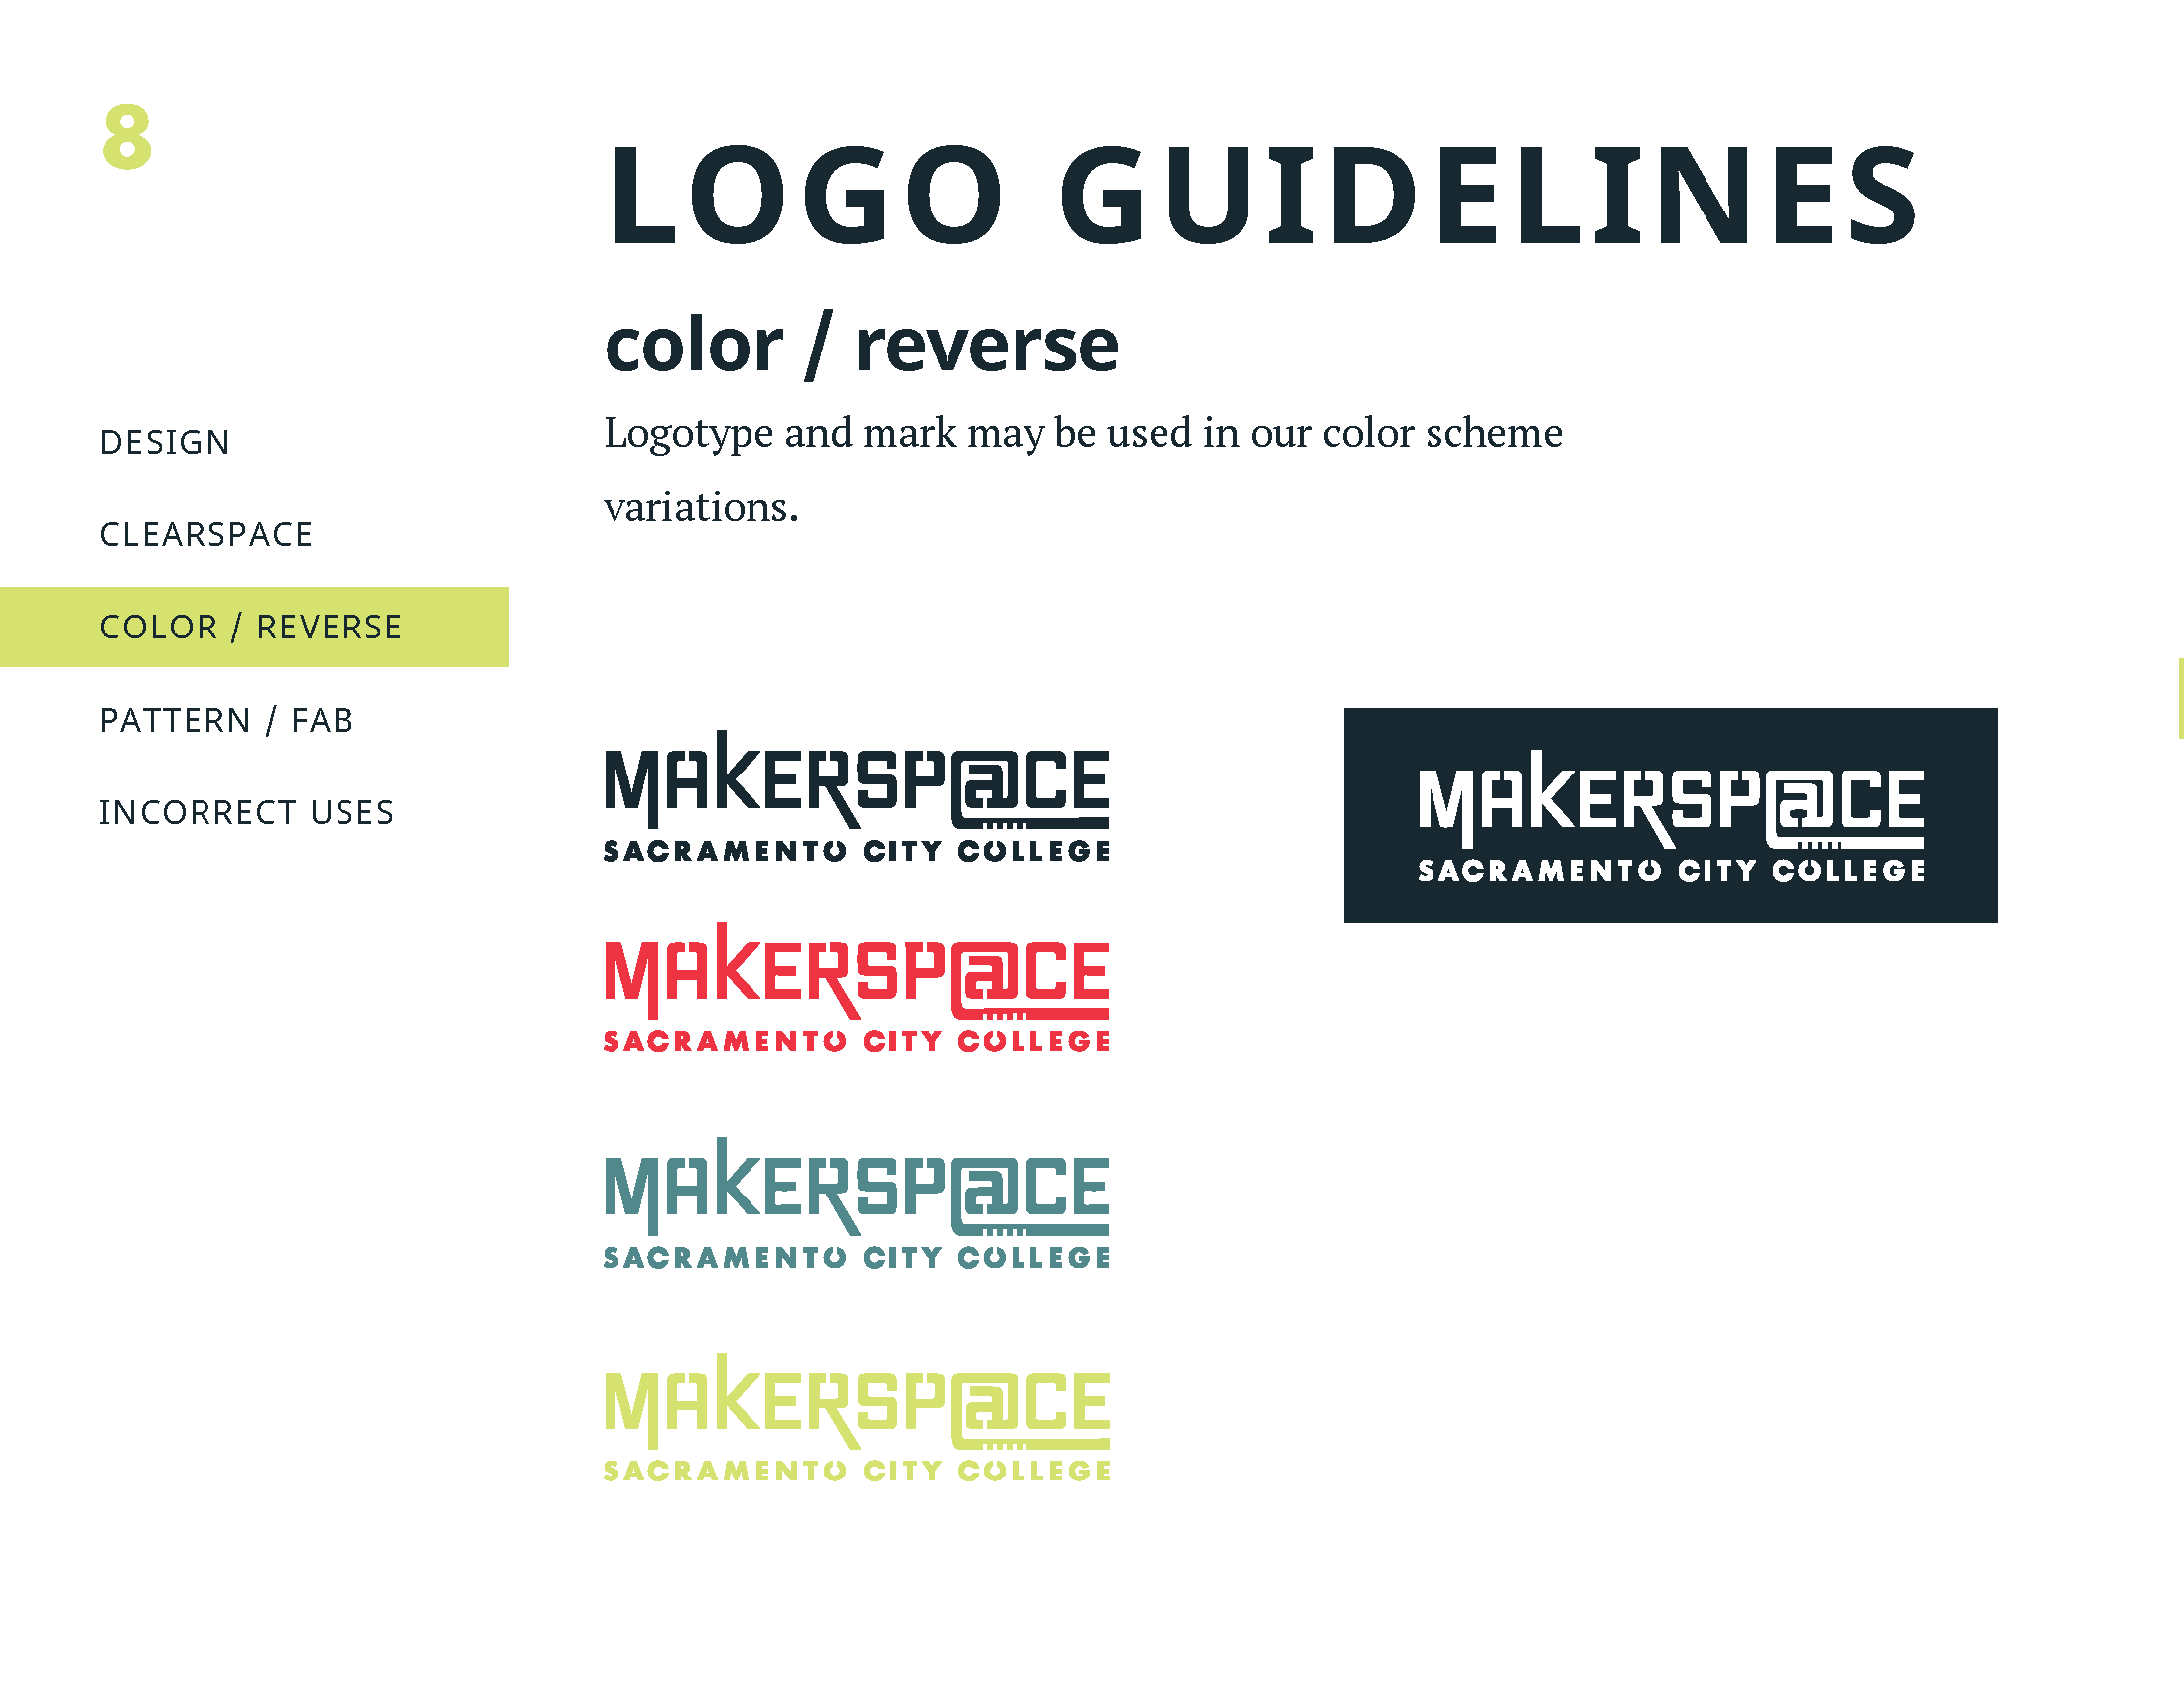 Makerspace_styleguide_Page_08.png